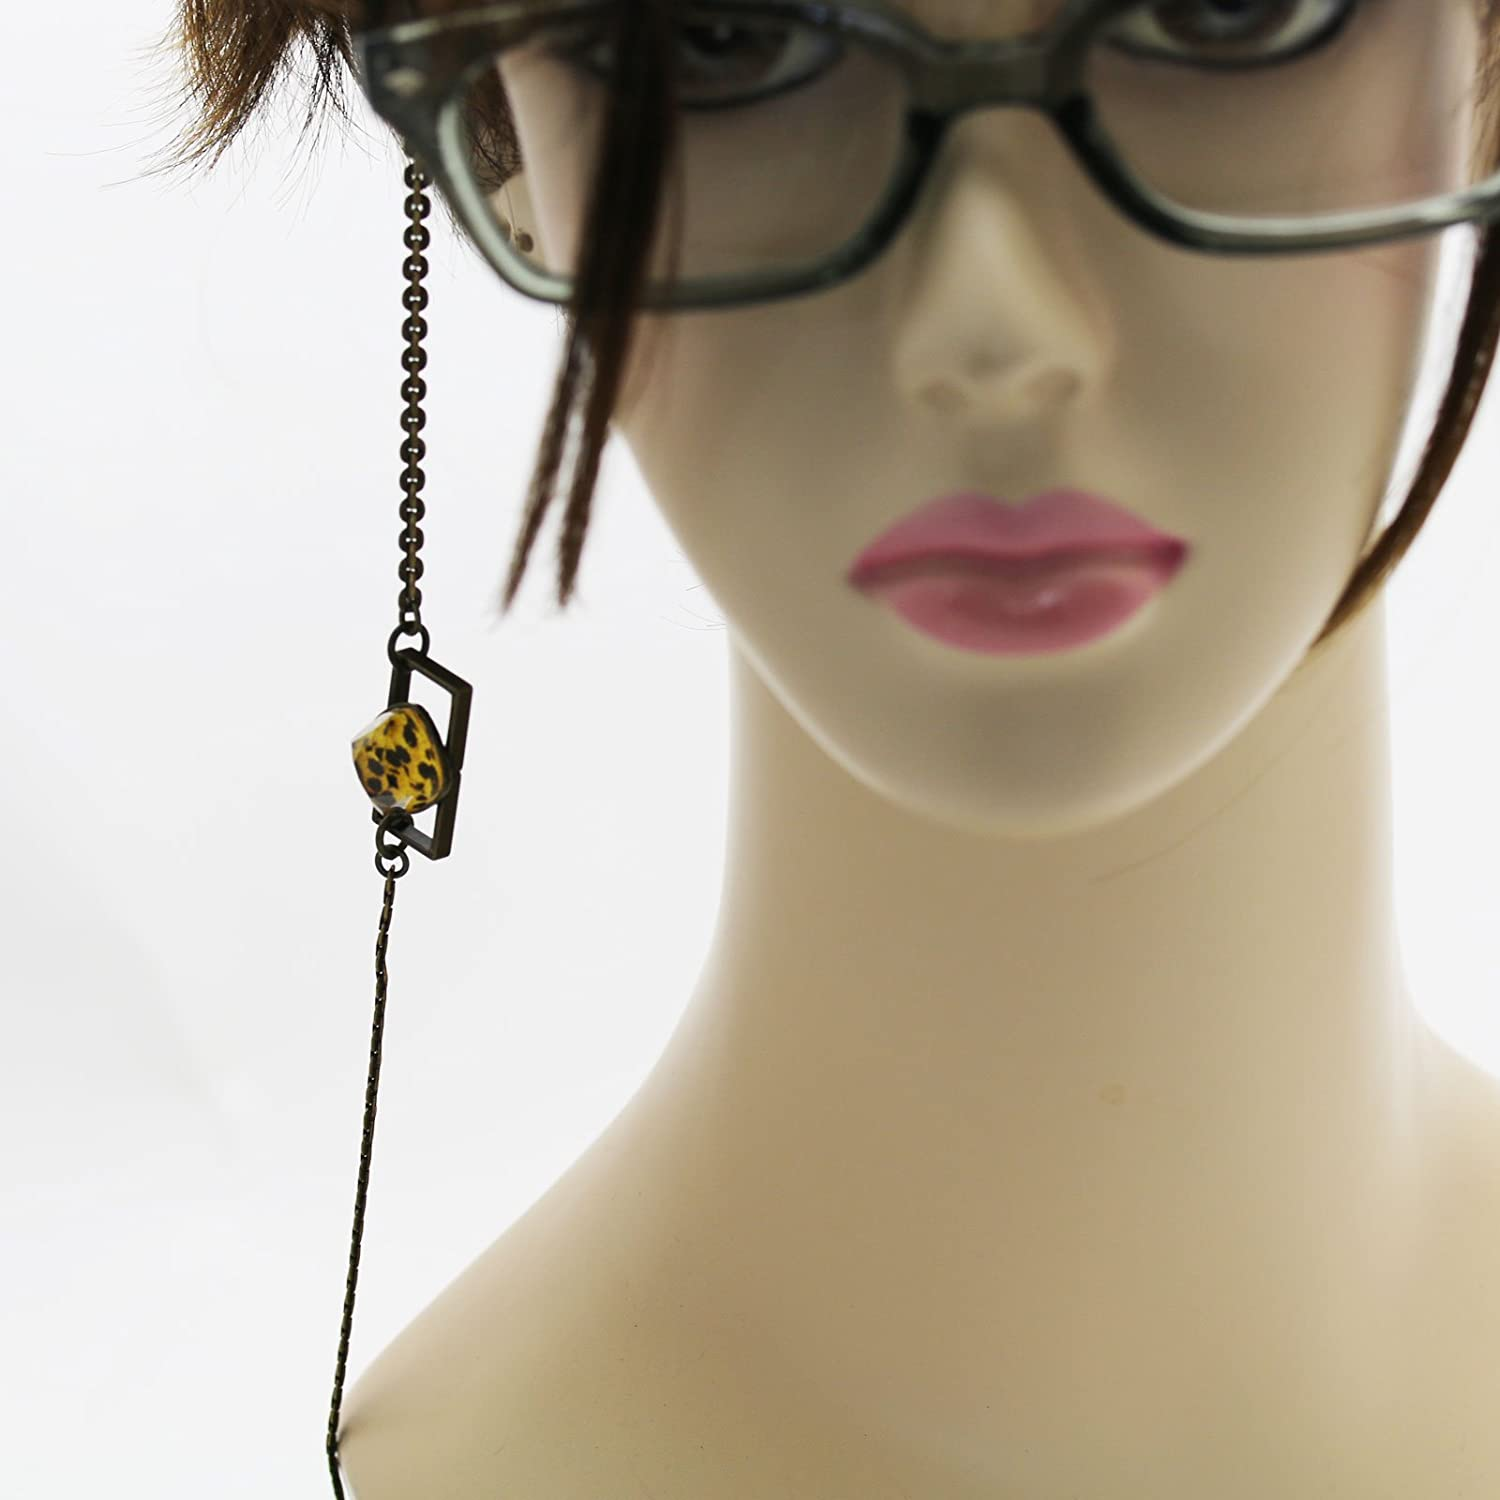 Tamarusan Eyeglasses Chain Cheetah Yellow Black Unisex Simple Animal